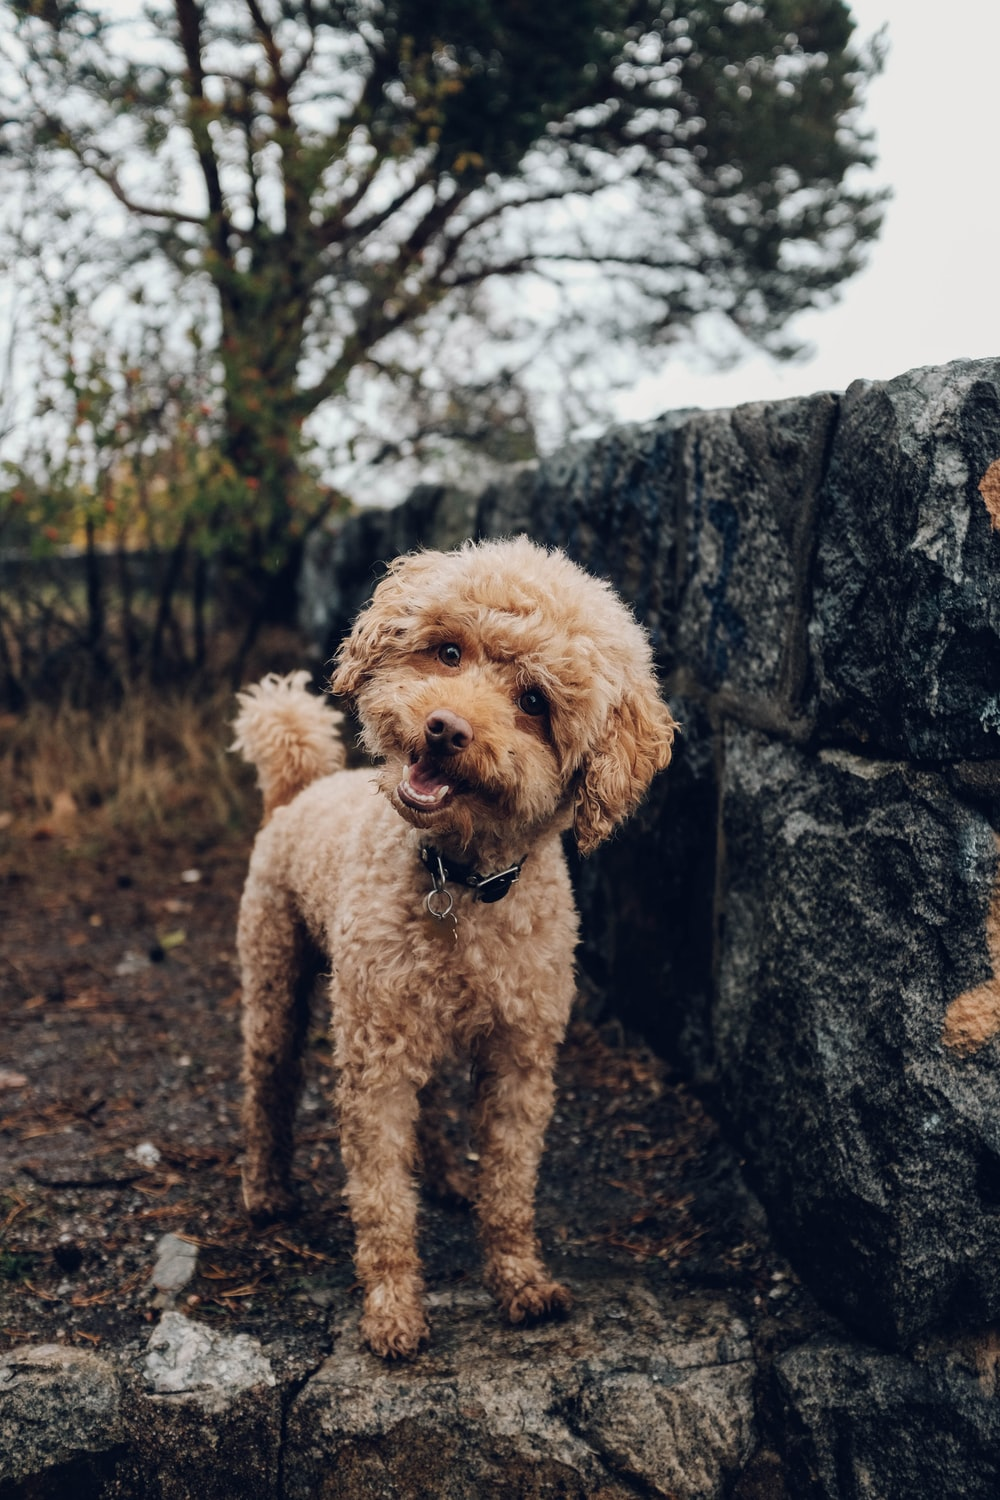 Poodle Pictures Download Free Images On Unsplash